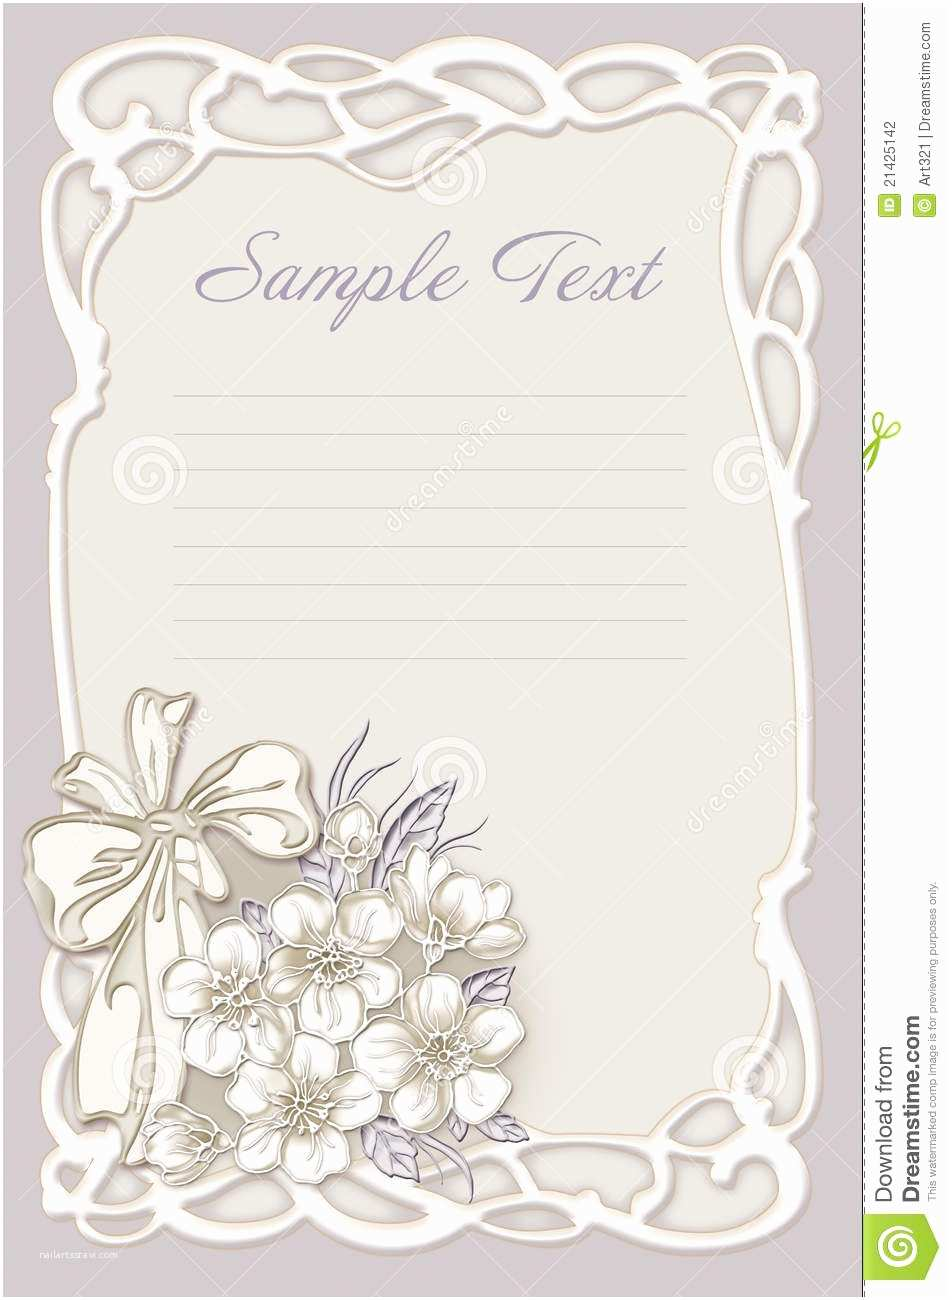 Time Frame for Wedding Invitations Wedding Invitation Frame with Flowers Stock Illustration